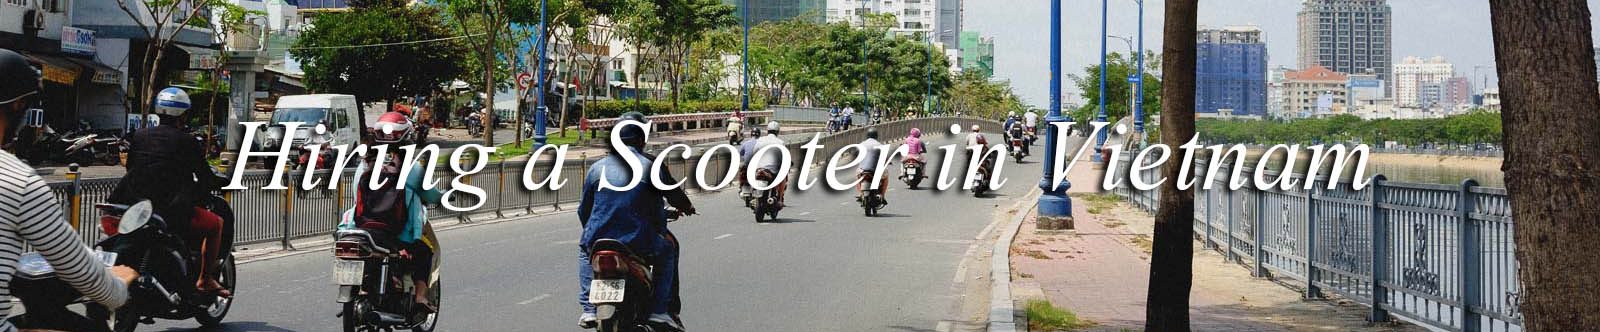 Vietnam Scooter hire and options available to travelers.